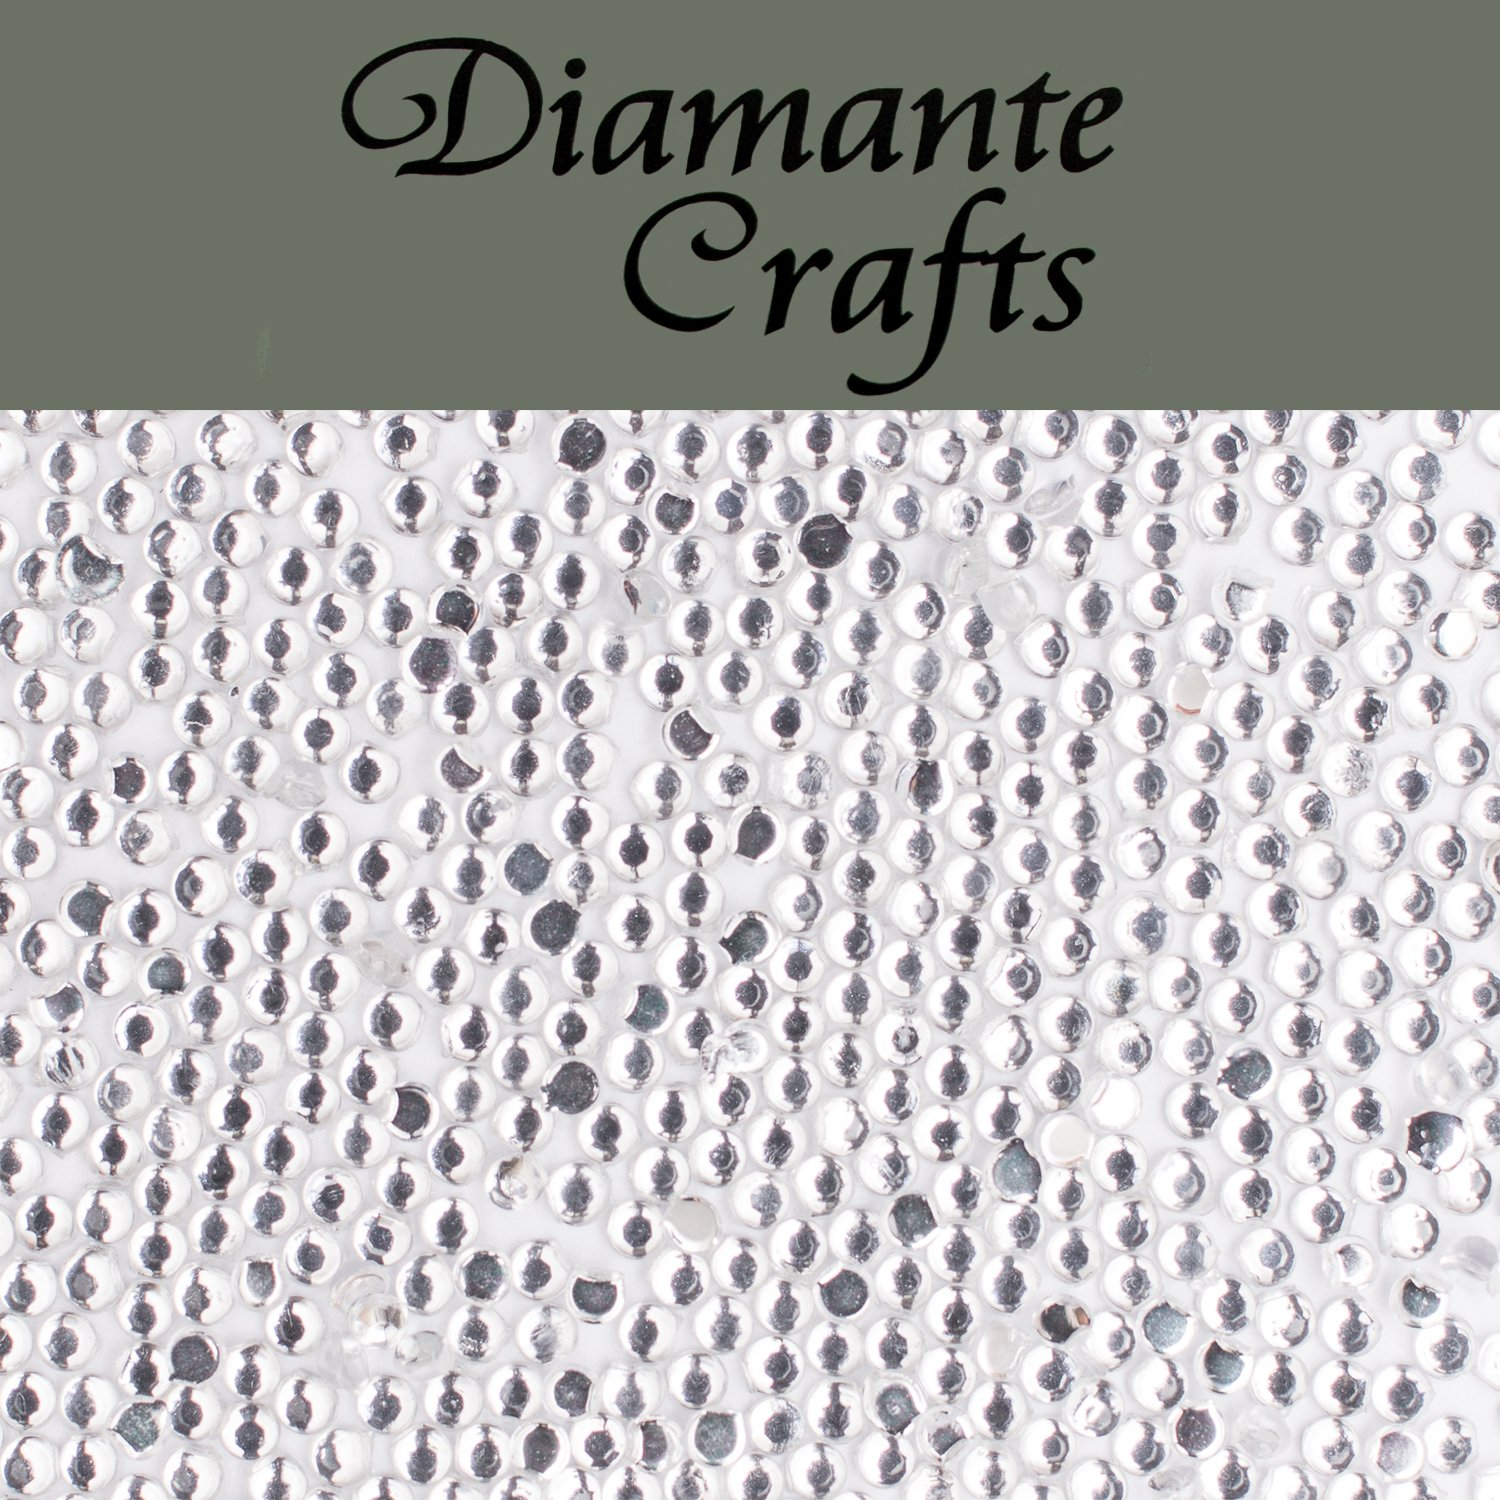 1000 x 1mm Clear Round Diamante Loose Flat Back Rhinestone Nail Body Vajazzle Gems - created exclusively for Diamante Crafts